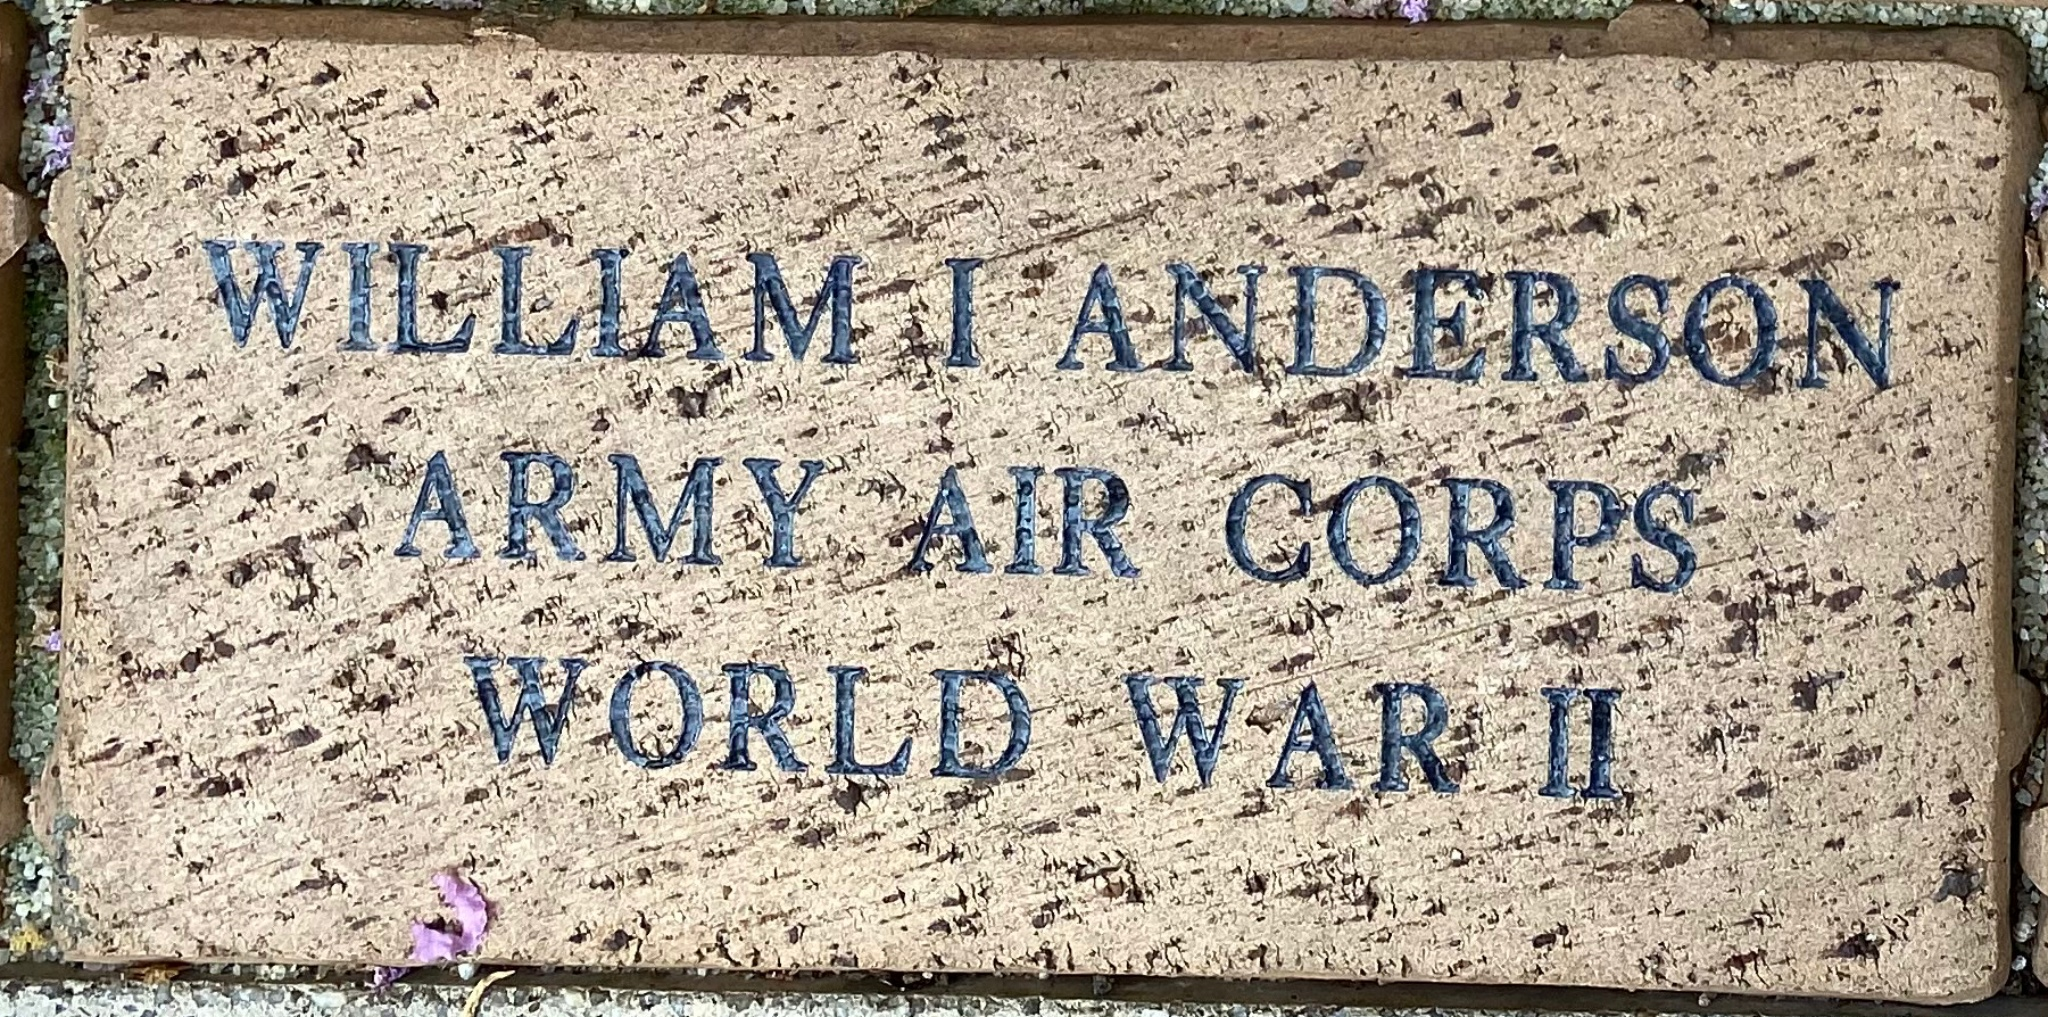 WILLIAM I ANDERSON ARMY AIR CORPS WORLD WAR II